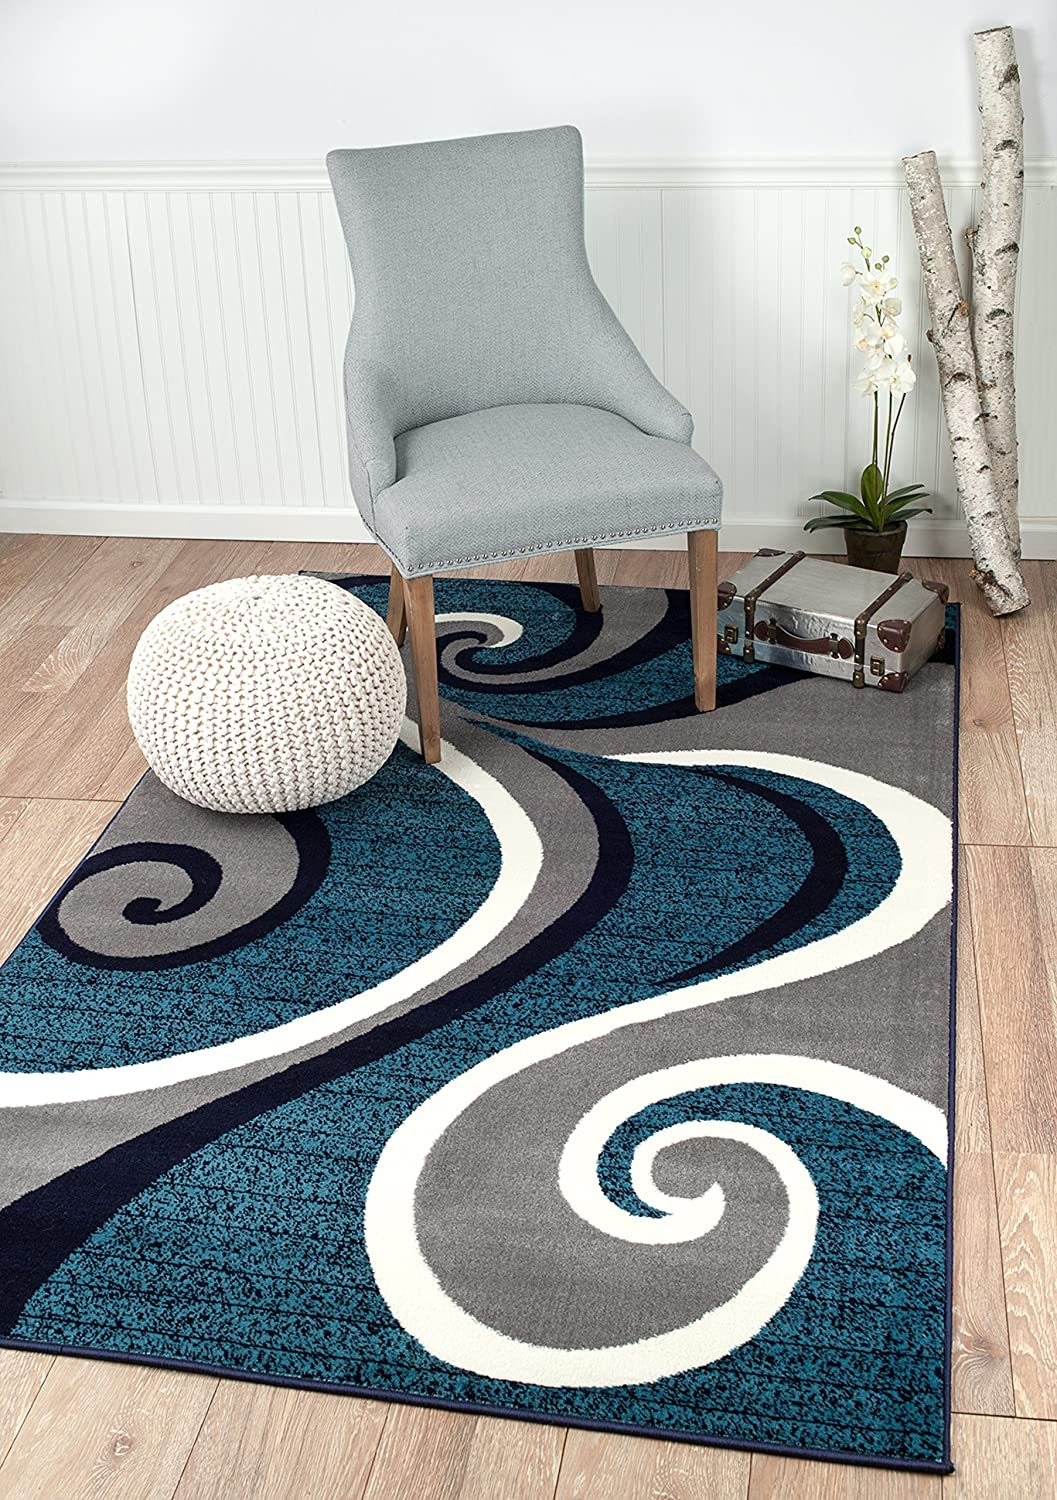 Summit New 32Swirl Blue Navy White Gray Area Surprise price Abstract Light Rug Ranking TOP16